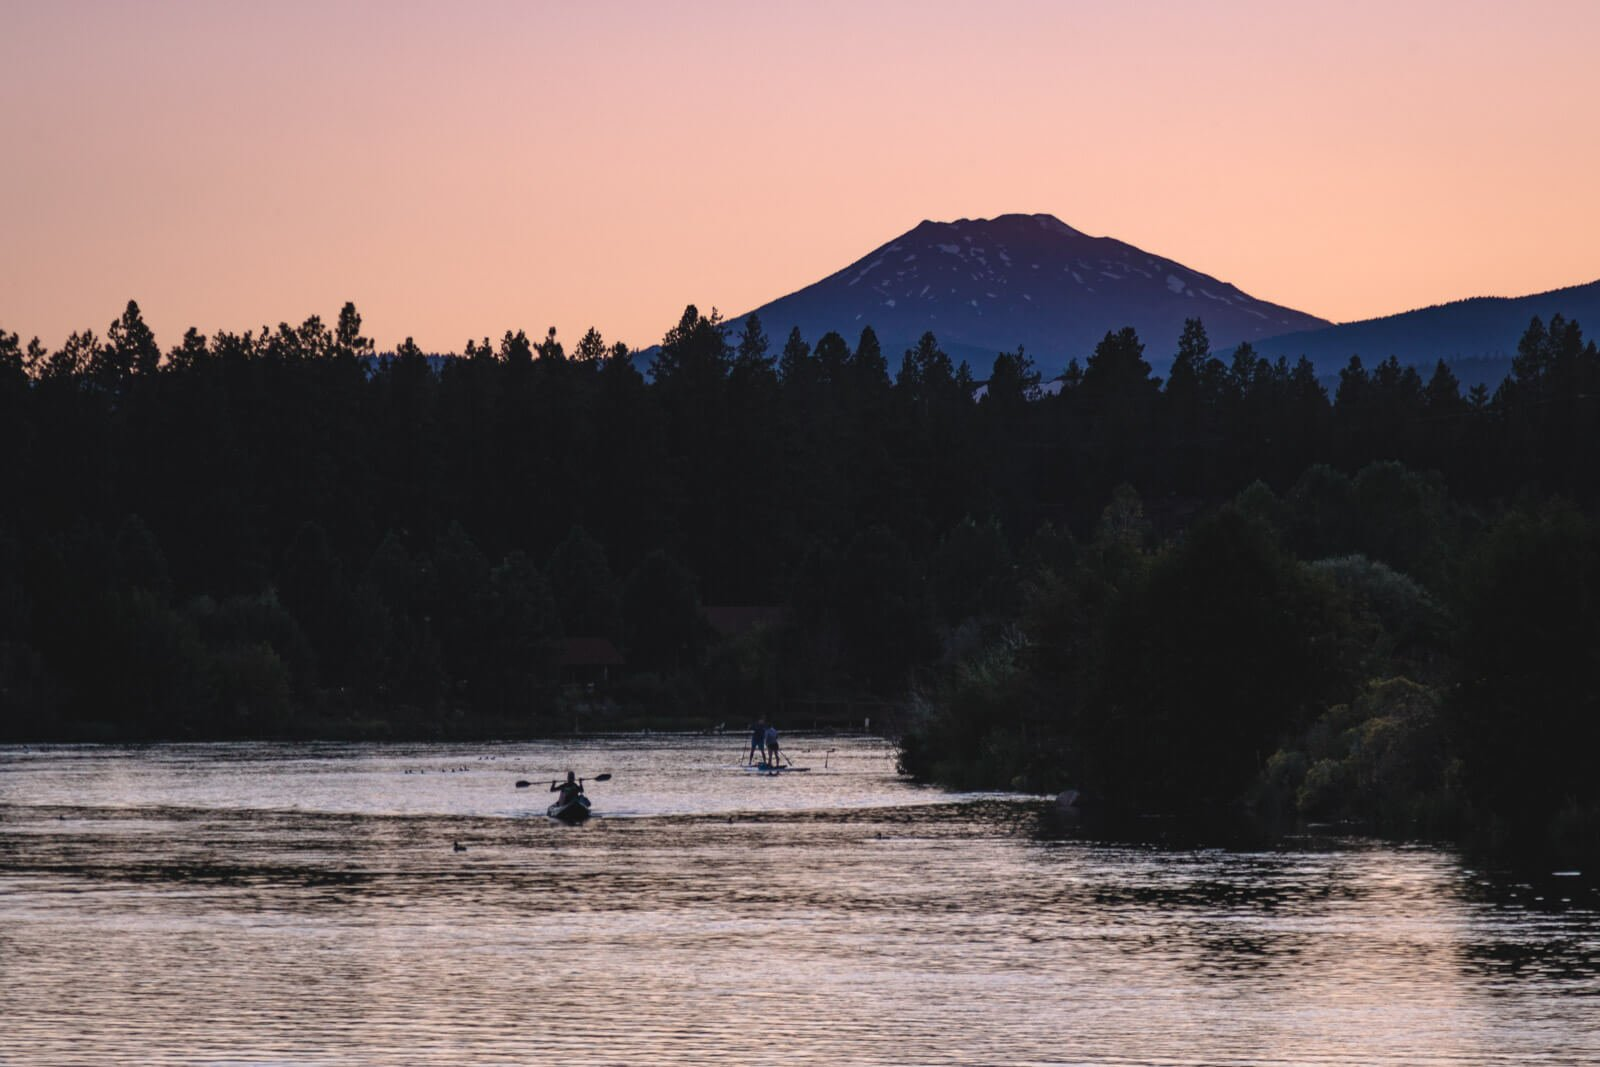 Kayakers on the Deschutes River — add this to your list if you're wondering what to do in Bend